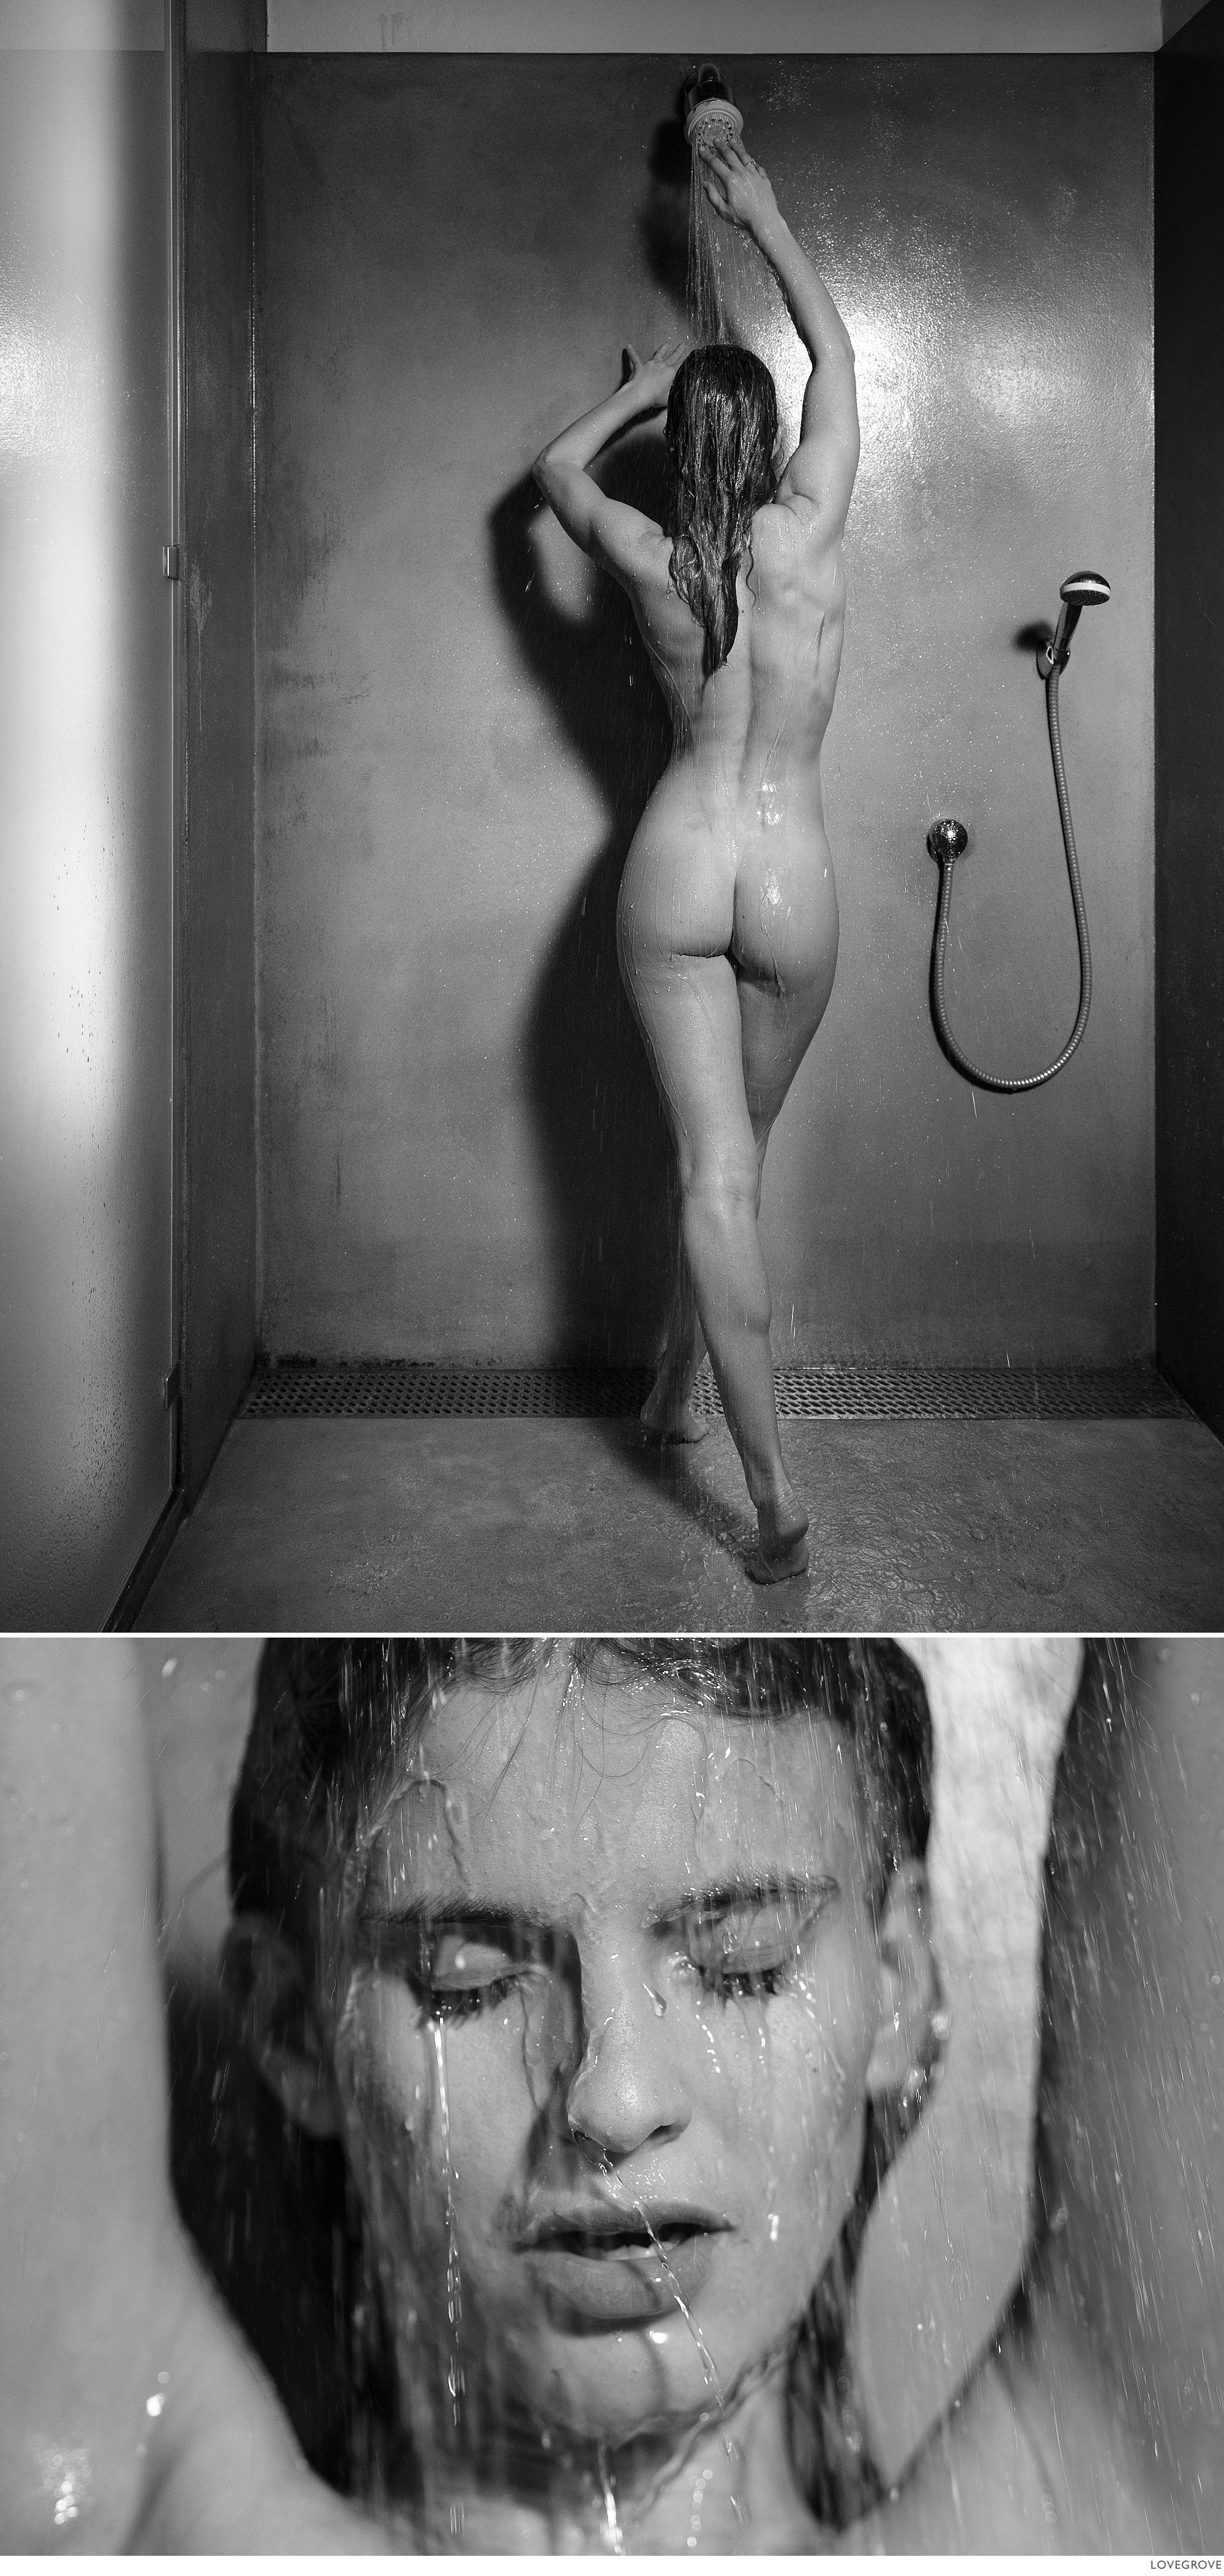 Terez Kačová in the shower. Shot in black and white.